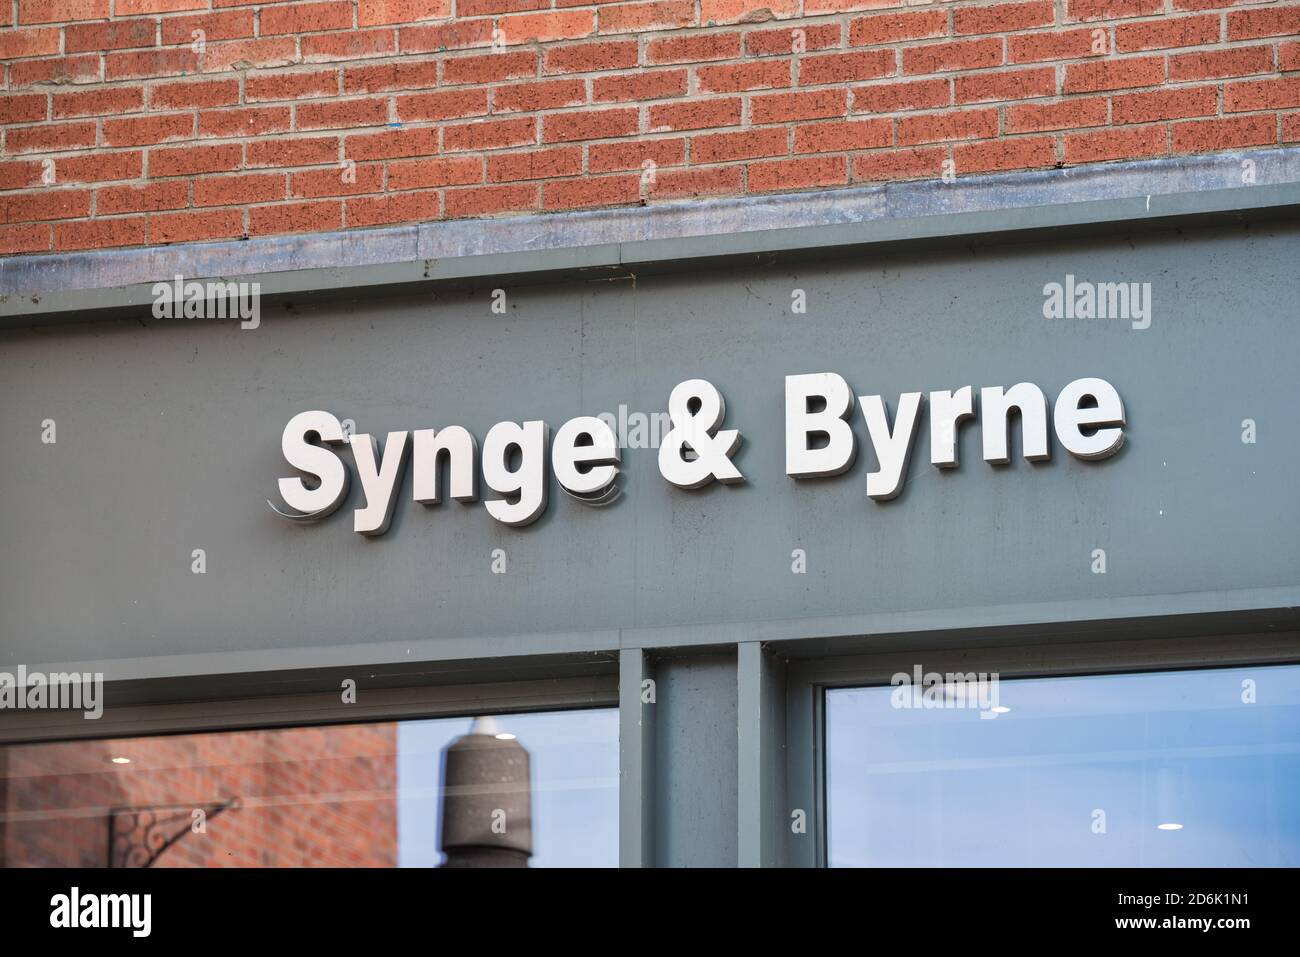 Derry, Northern Ireland- Sept 27, 2020: The sign for Synge & Bryrne in Derry. Stock Photo